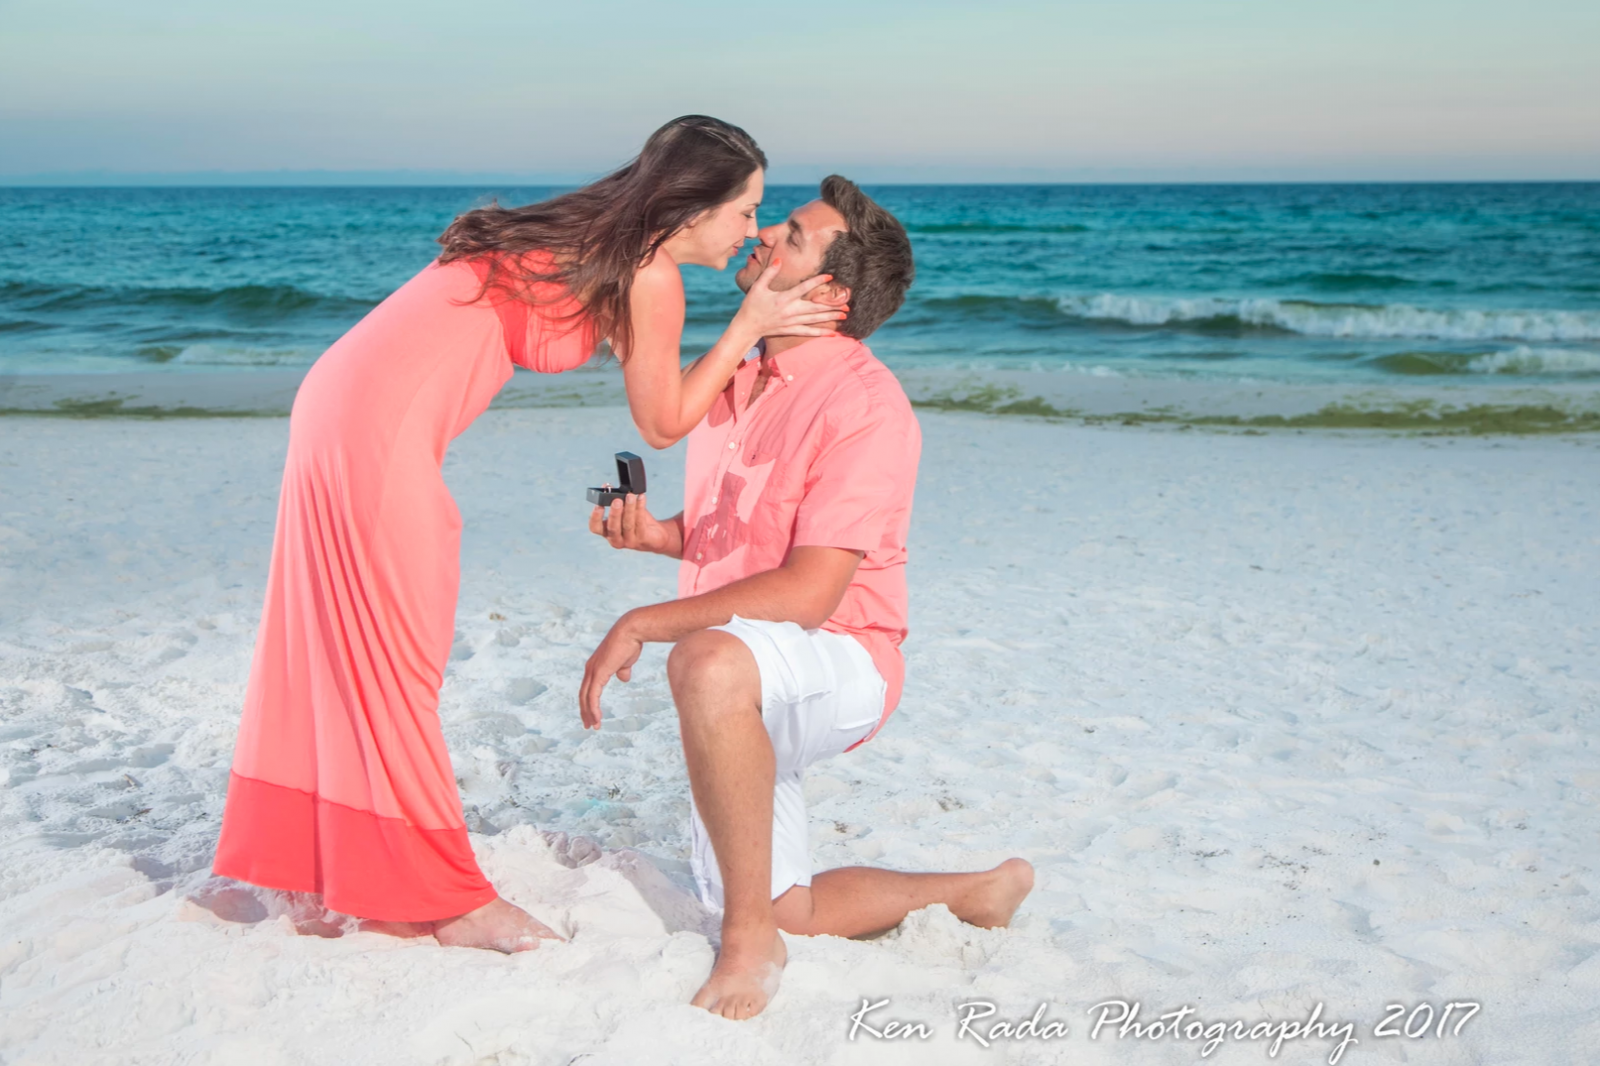 Ken Rada Photography captures an engagement on the beach